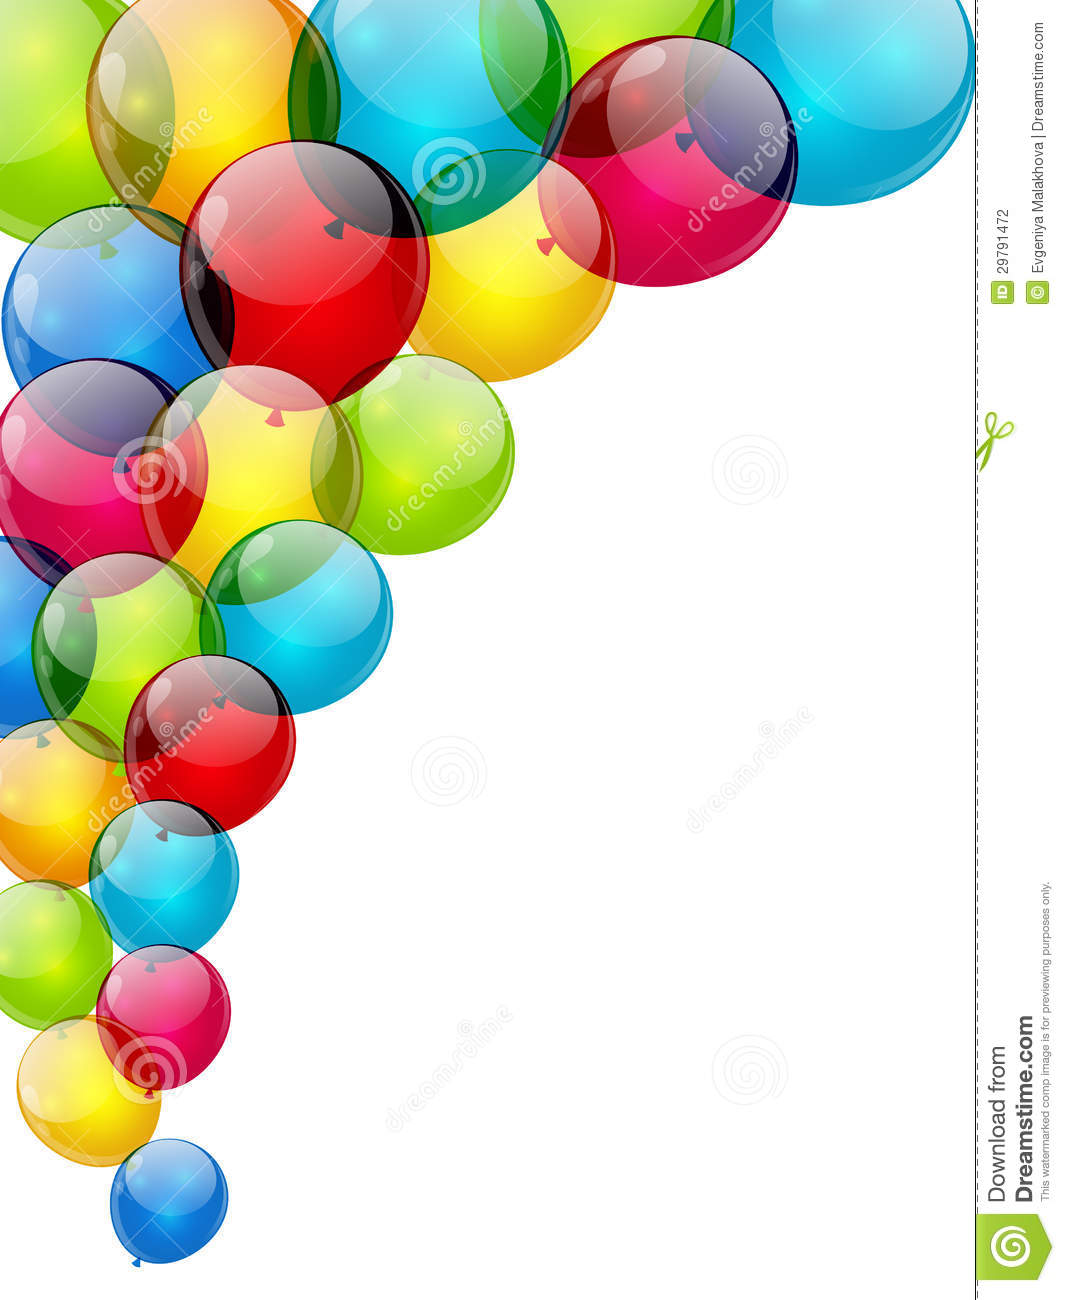 Balloon Background Stock Photography - Image: 29791472